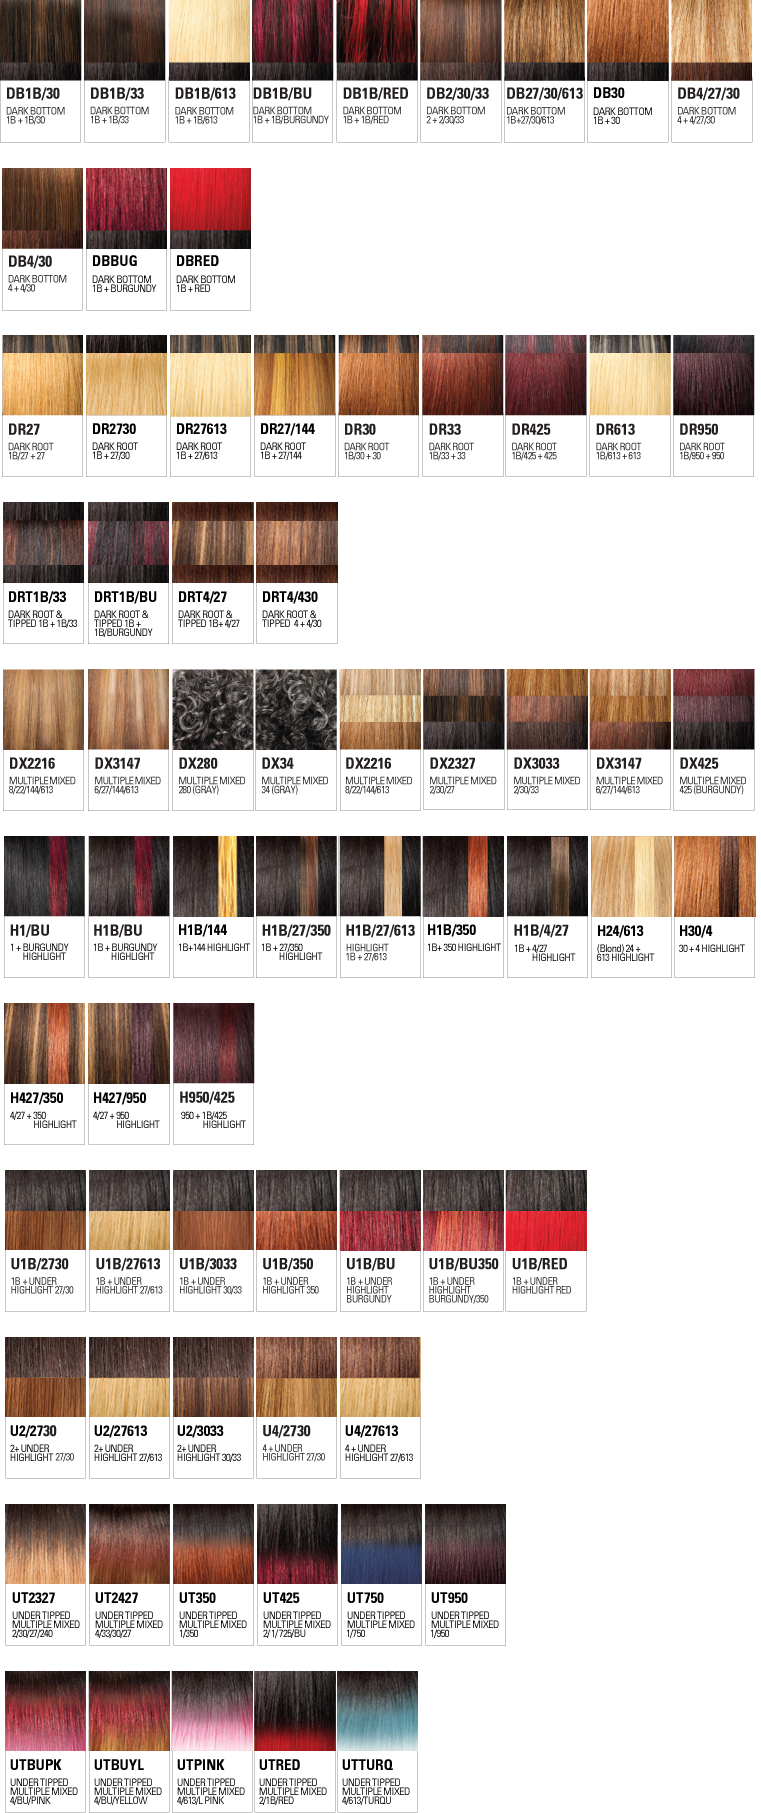 Httpoutrecolor chart wigs weaves extensions httpoutrecolor chart nvjuhfo Images